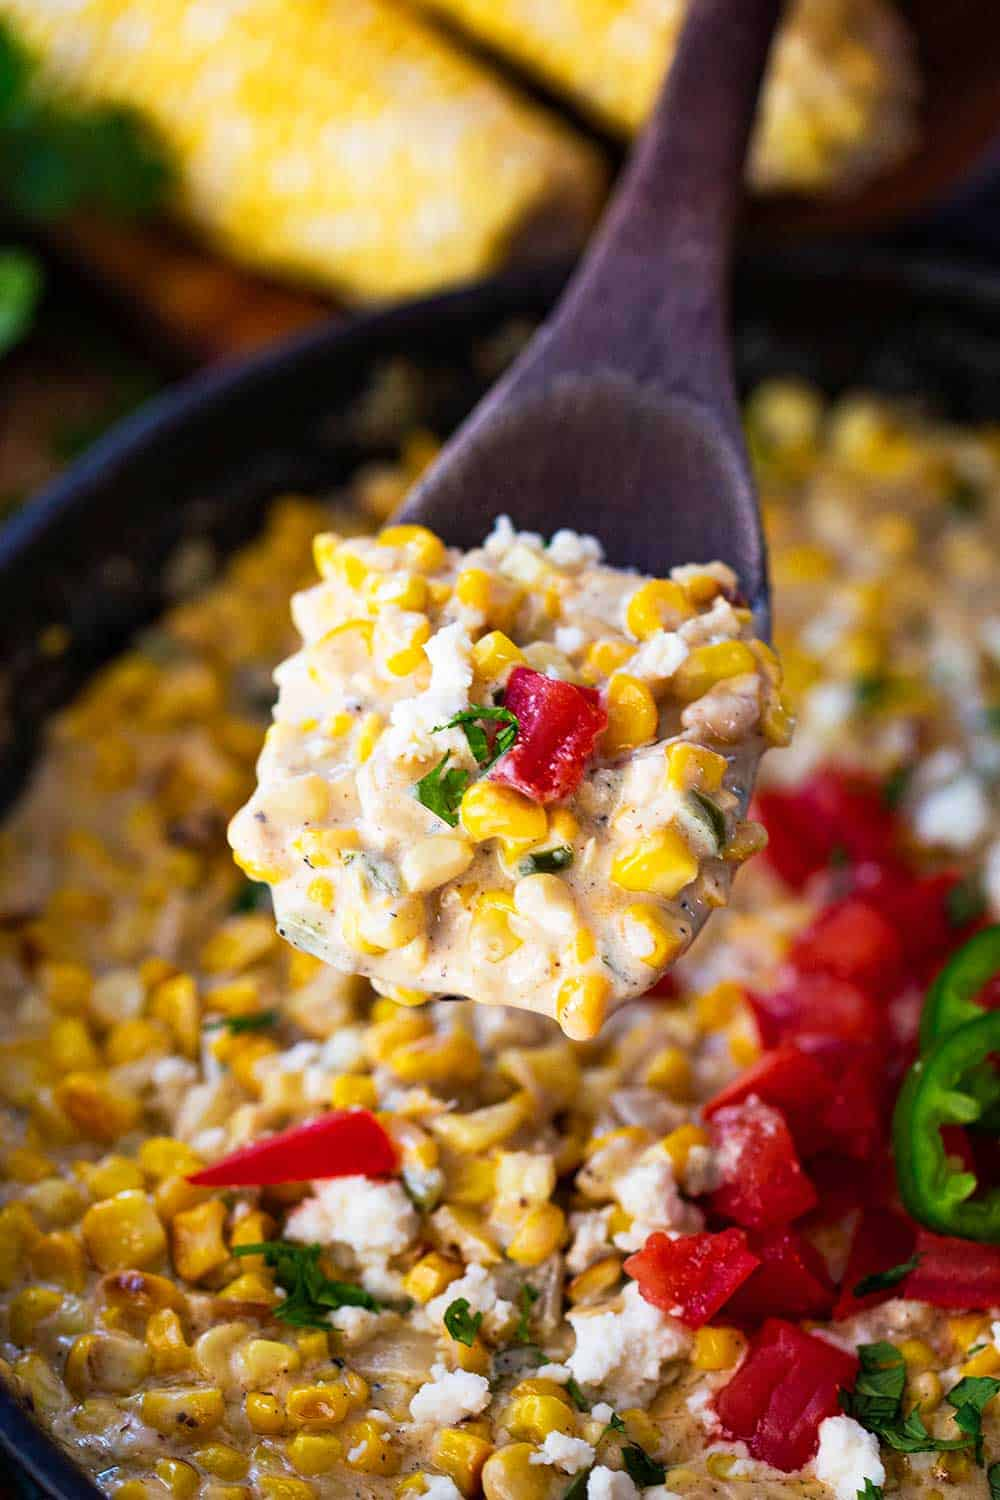 A wooden spoon lifting up a helping of Mexican cream corn from a skillet.